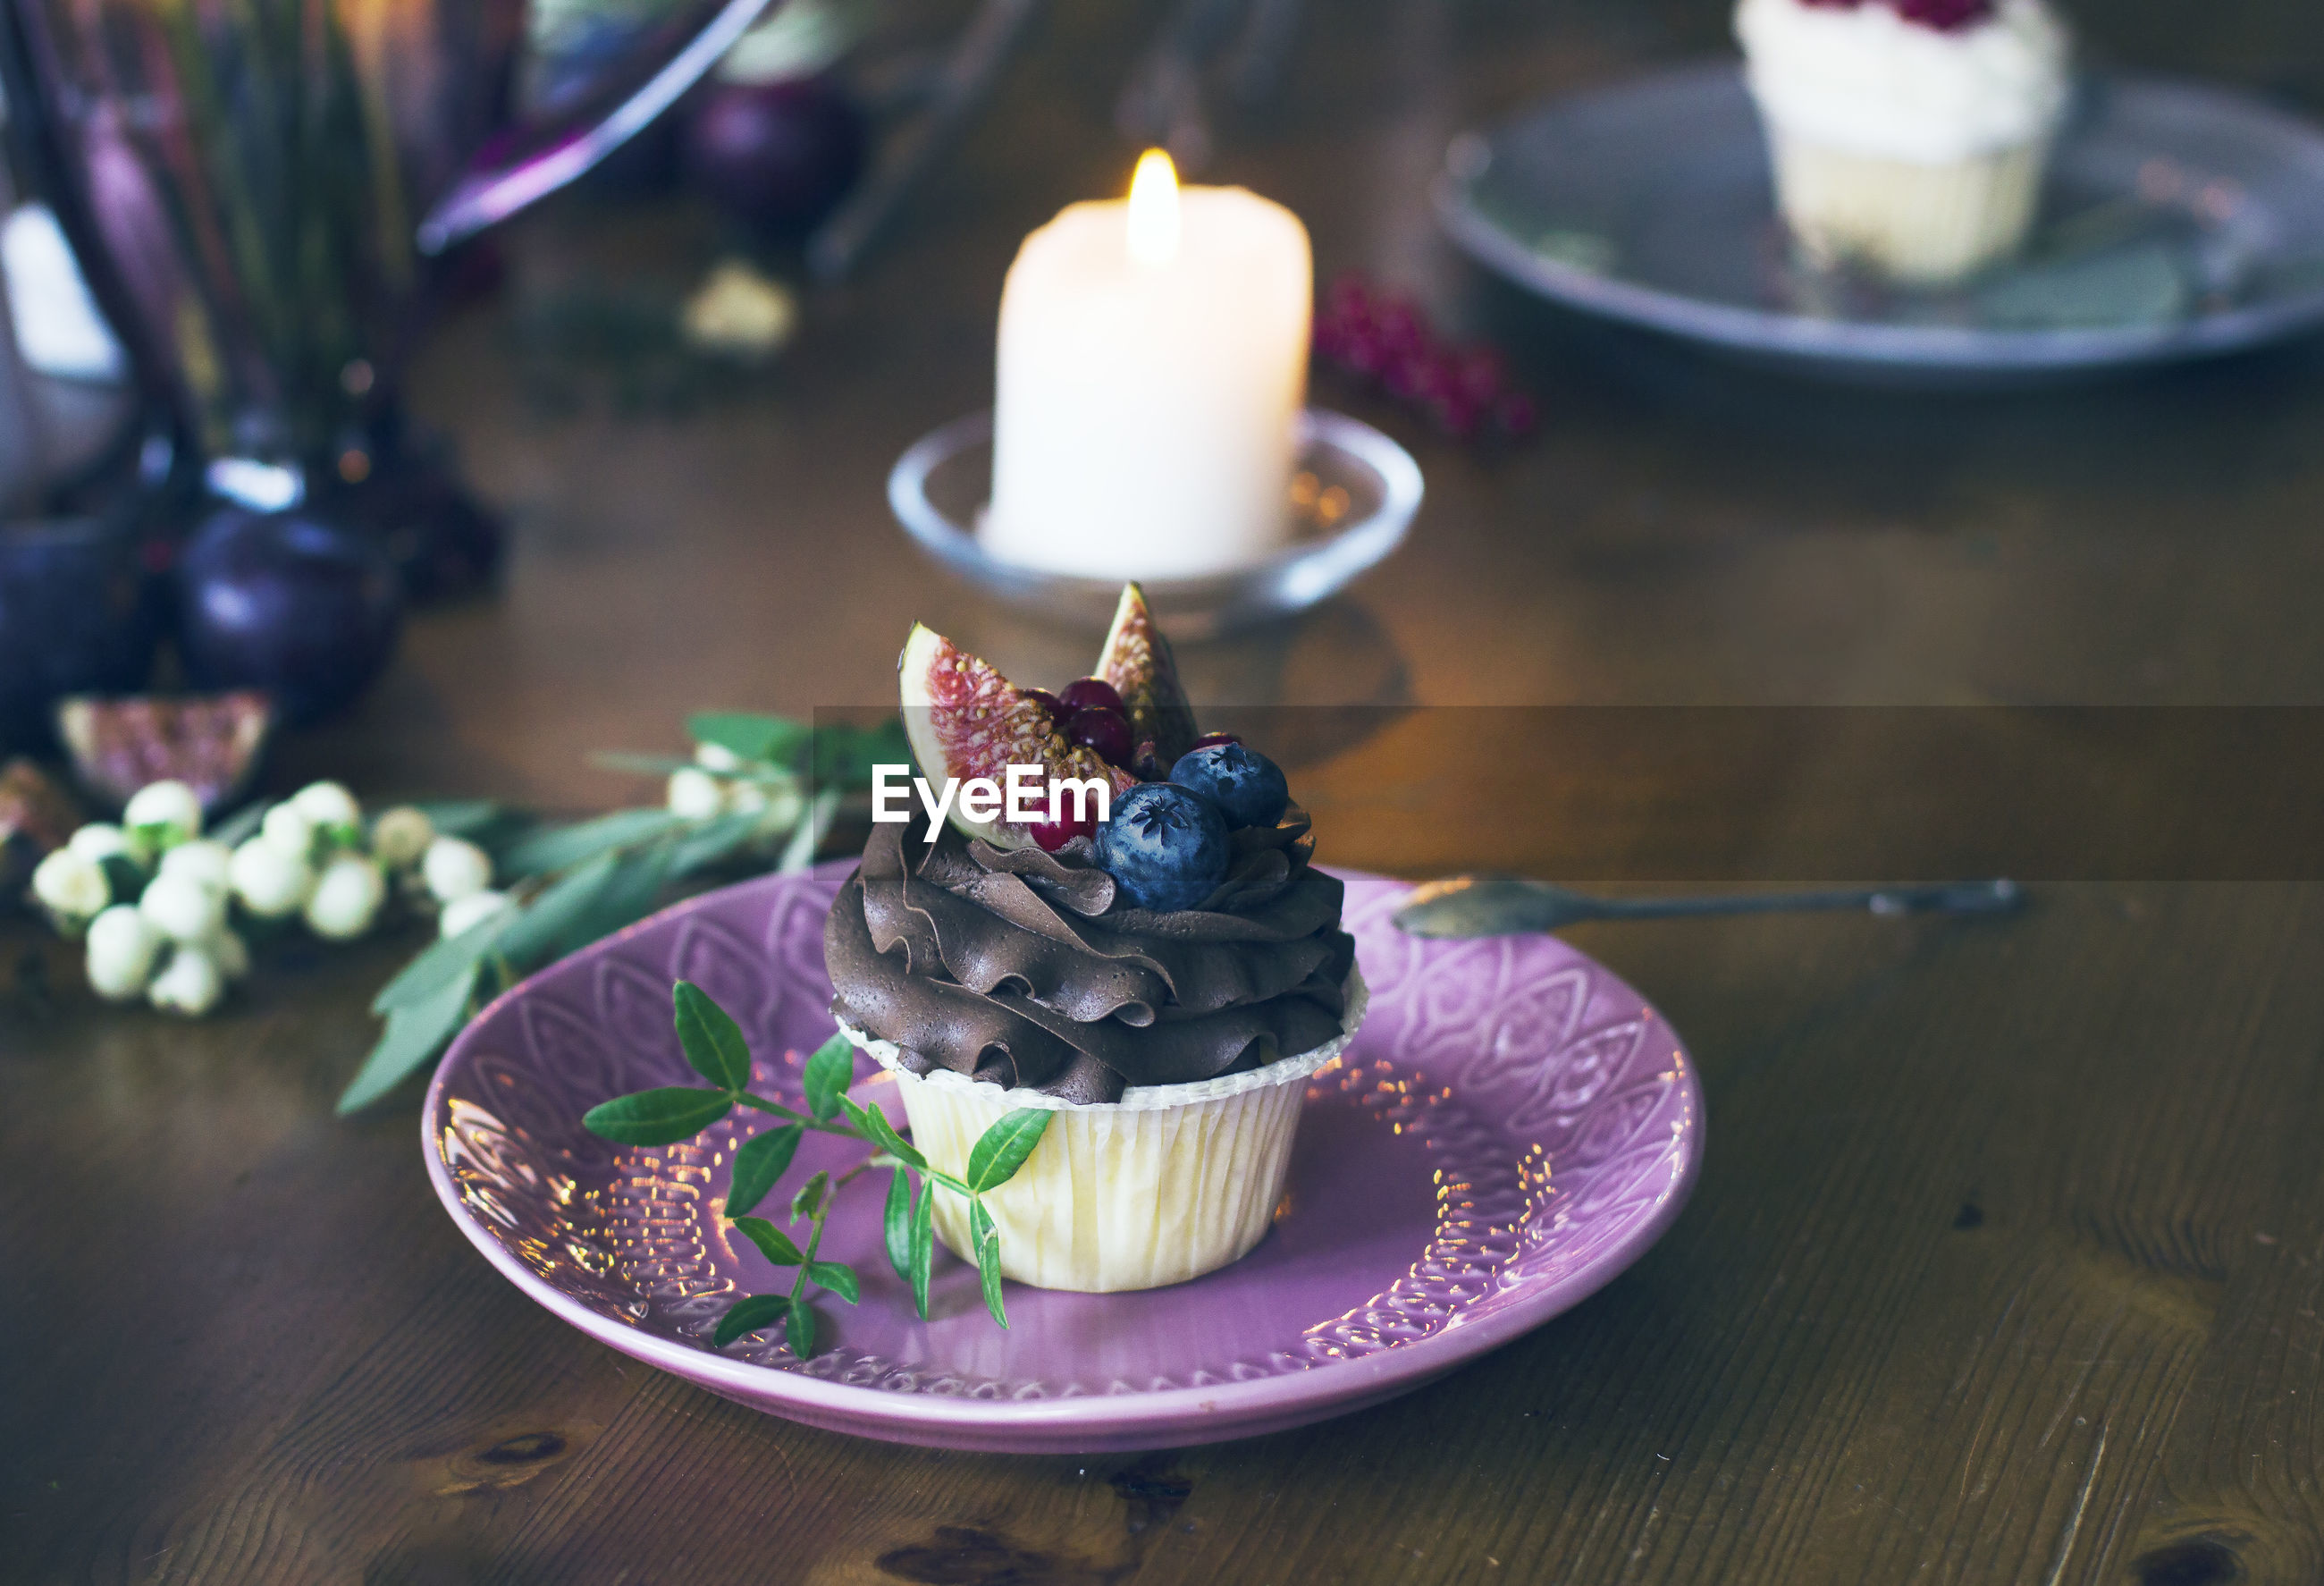 Tea light candles and cupcake in plate on table